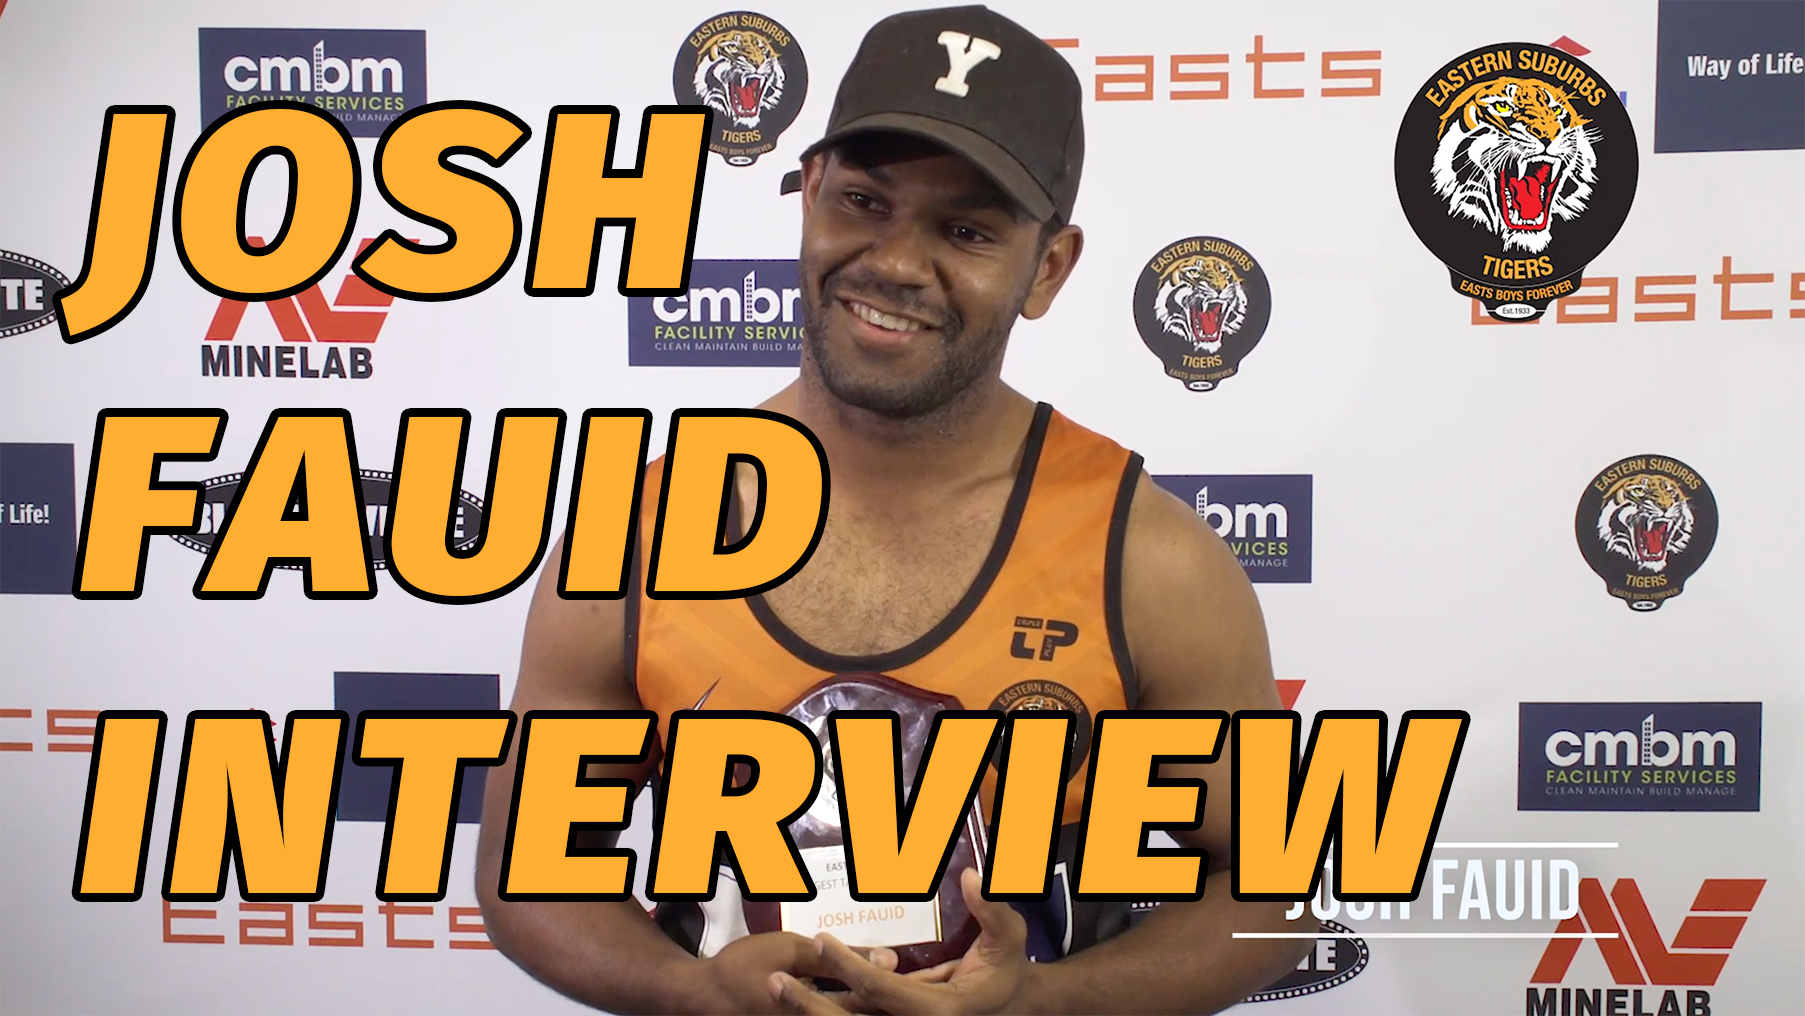 [JOSH FAUID INTERVIEW] Josh swings by TigerTV to talk about his inspirations, what he thinks of the club, and more. #Funny #JoshFauid #GoTheTigers #Season2019 #EBF #ORANGEandBLACK